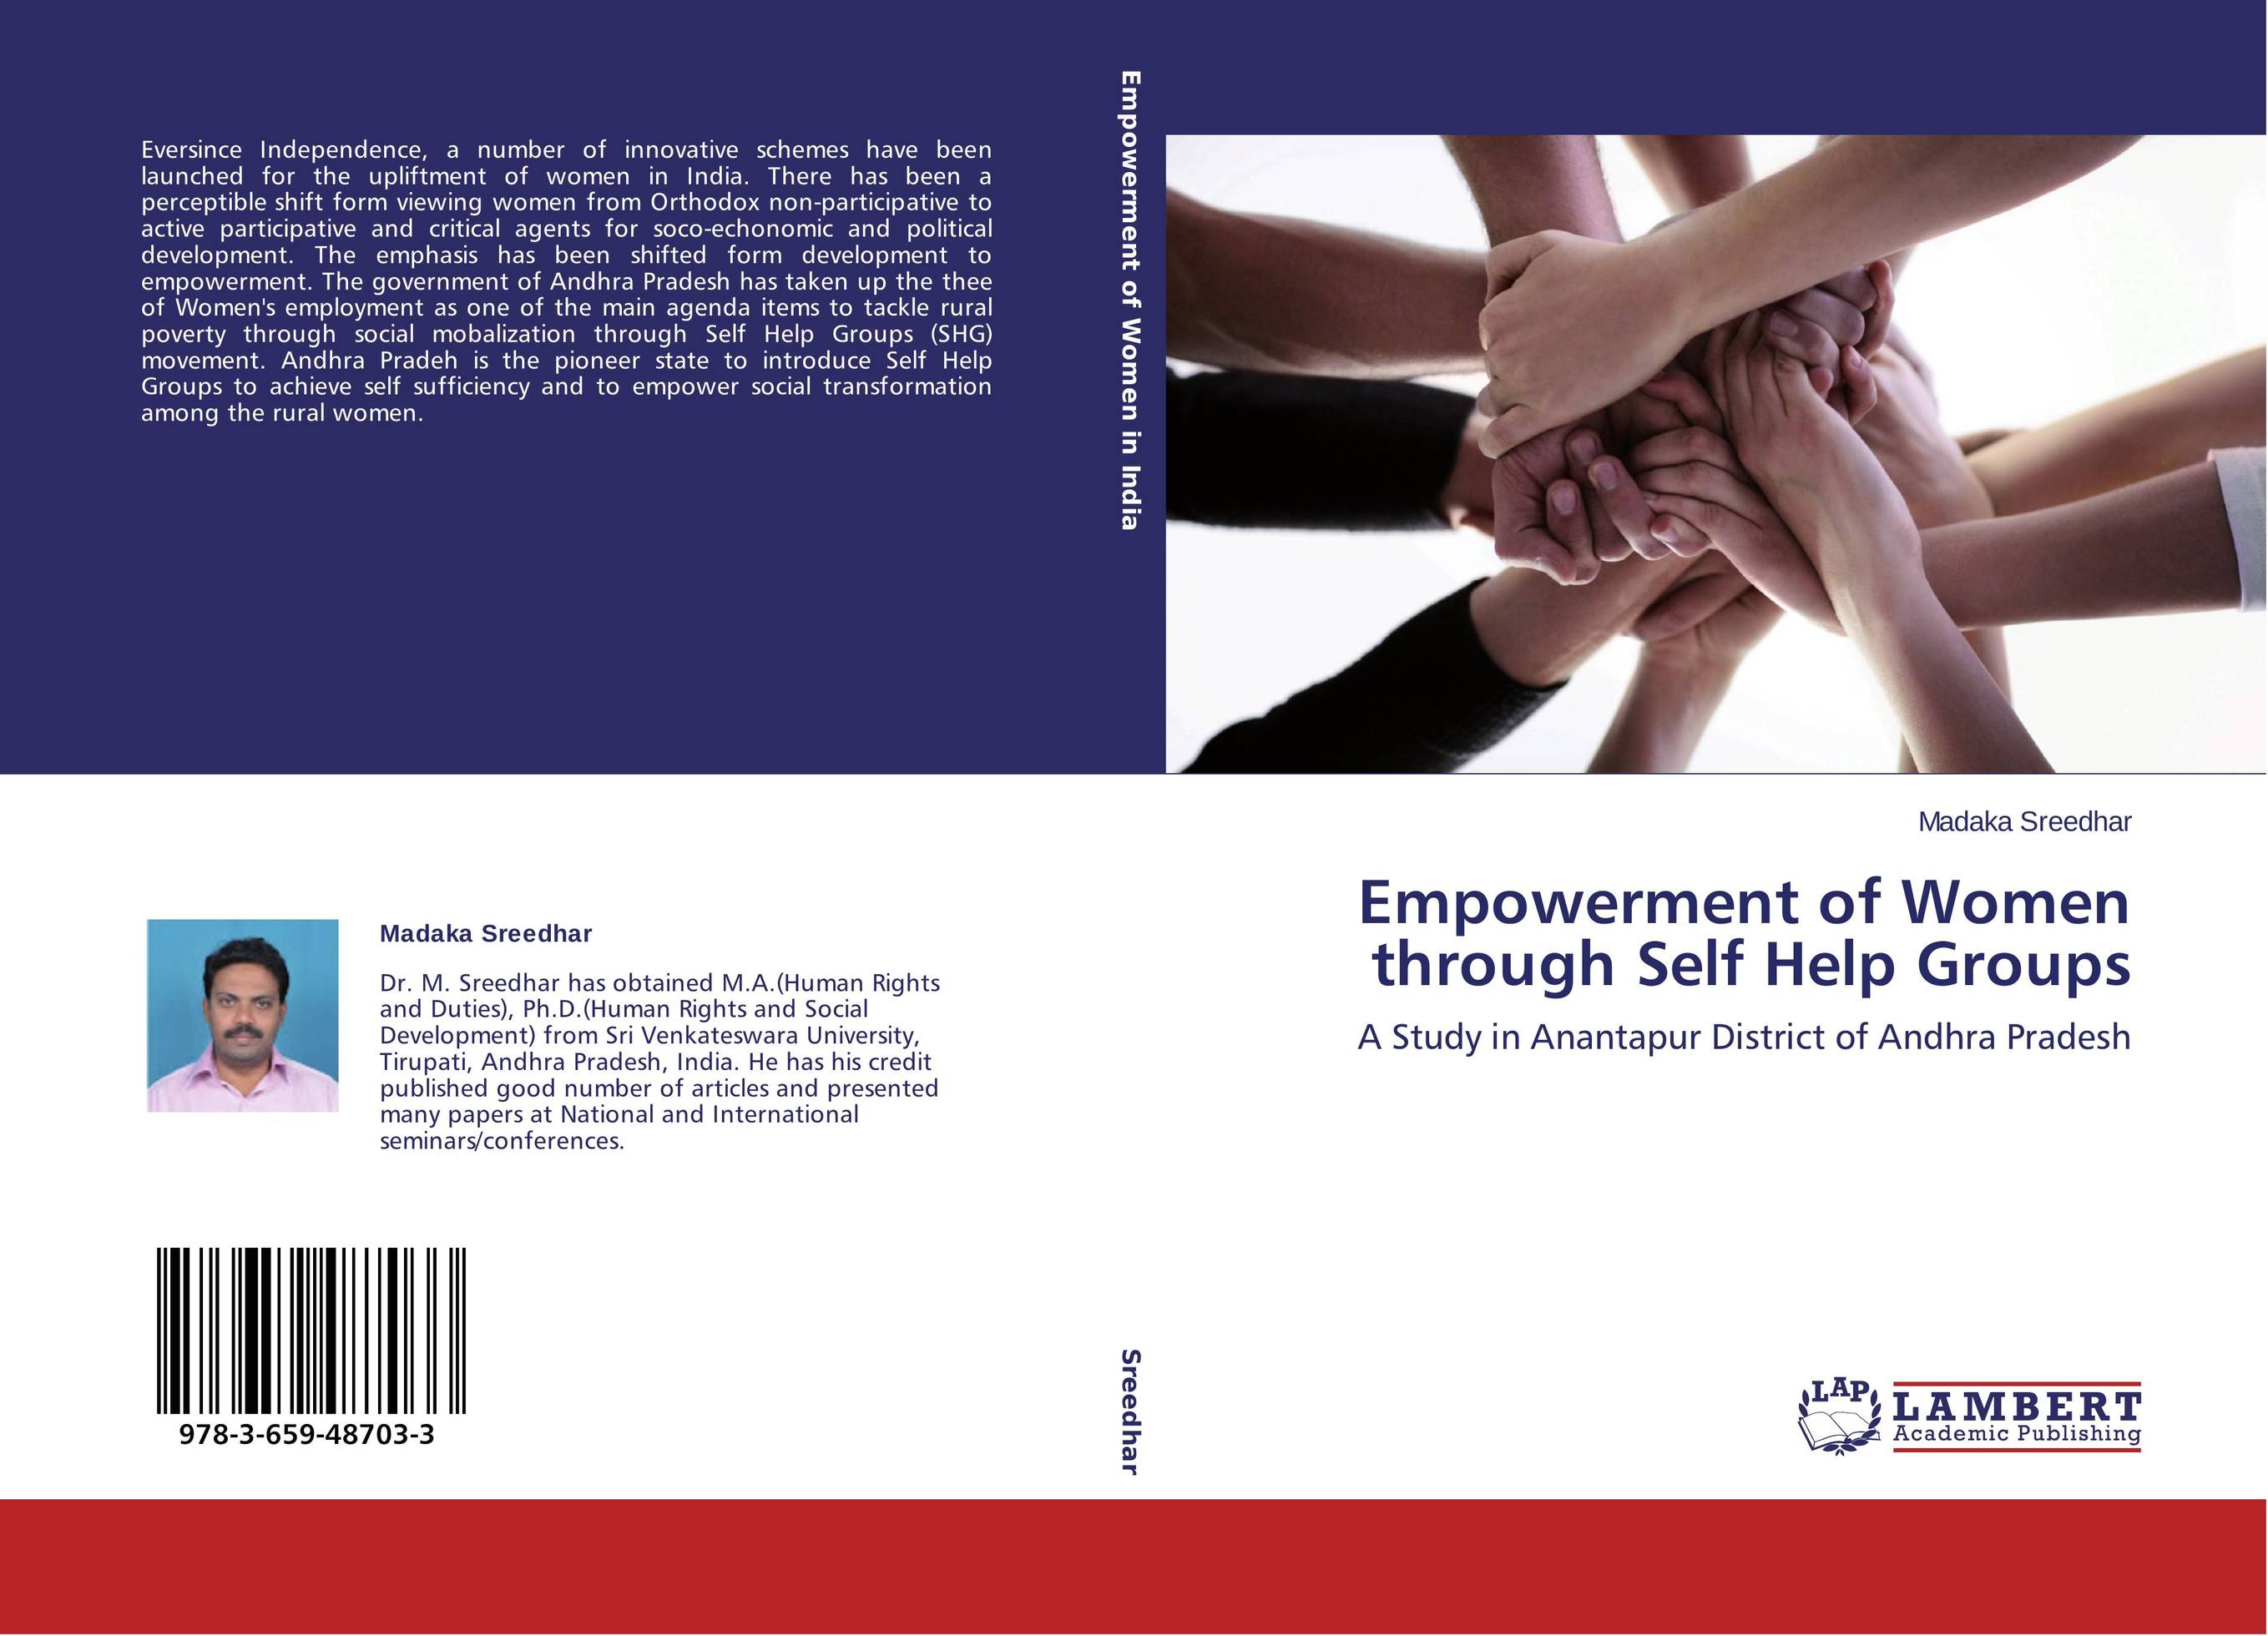 women self help group Reference: women's world banking wwwwomensworldbankingorg in excerpts from the report of the un expert group on women and finance, chaired by the wwb we learned that: around the world, women's economic positions are adversely affected by their lack of access to productive resources.